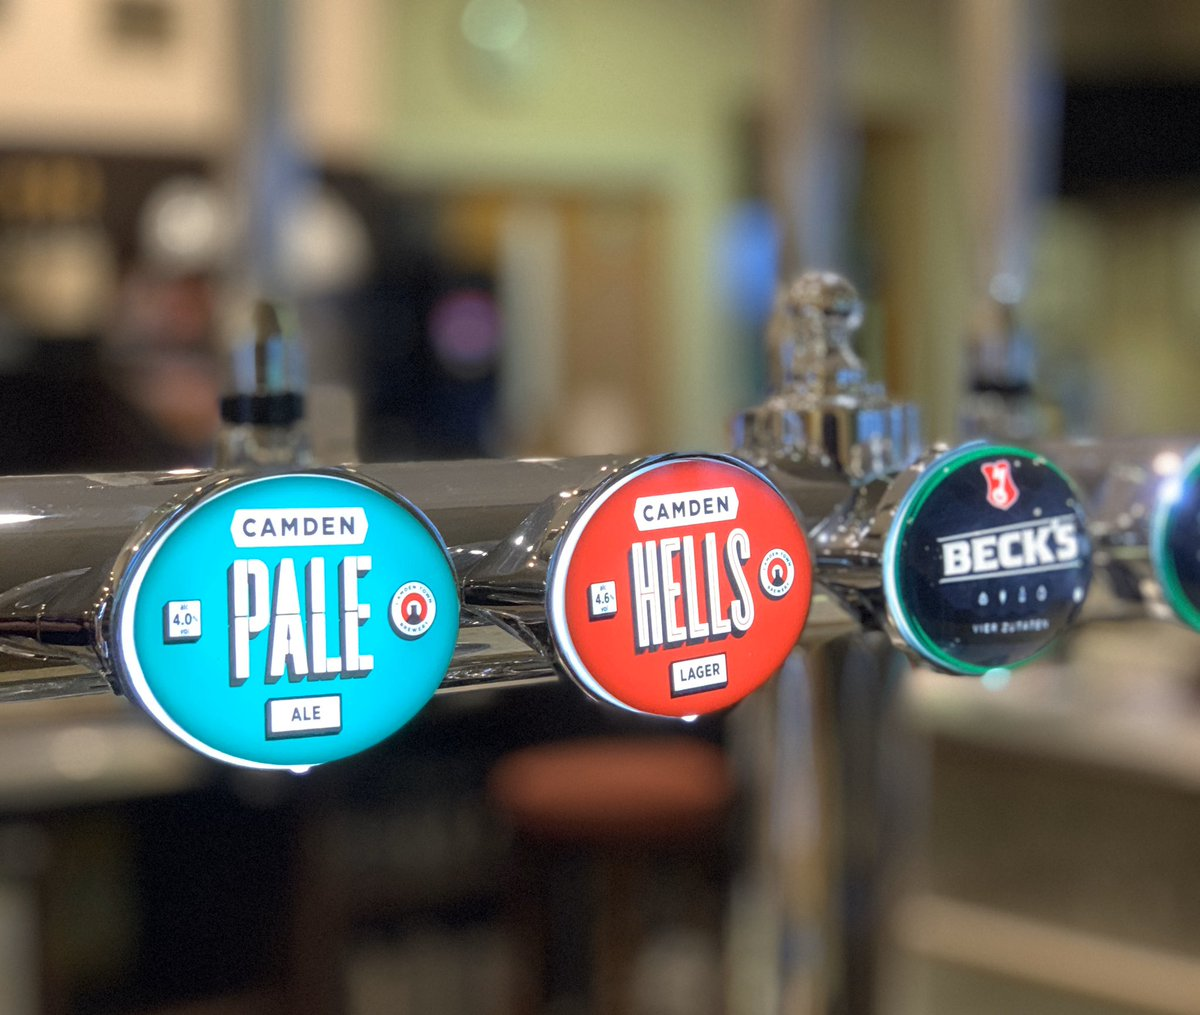 test Twitter Media - We have some new beers on draught. Why not pop in & try one of our new craft beers from Camden Brewery. Hella Lager or Camden Pale Ale. They're tasting great! https://t.co/7mNHNShFYB